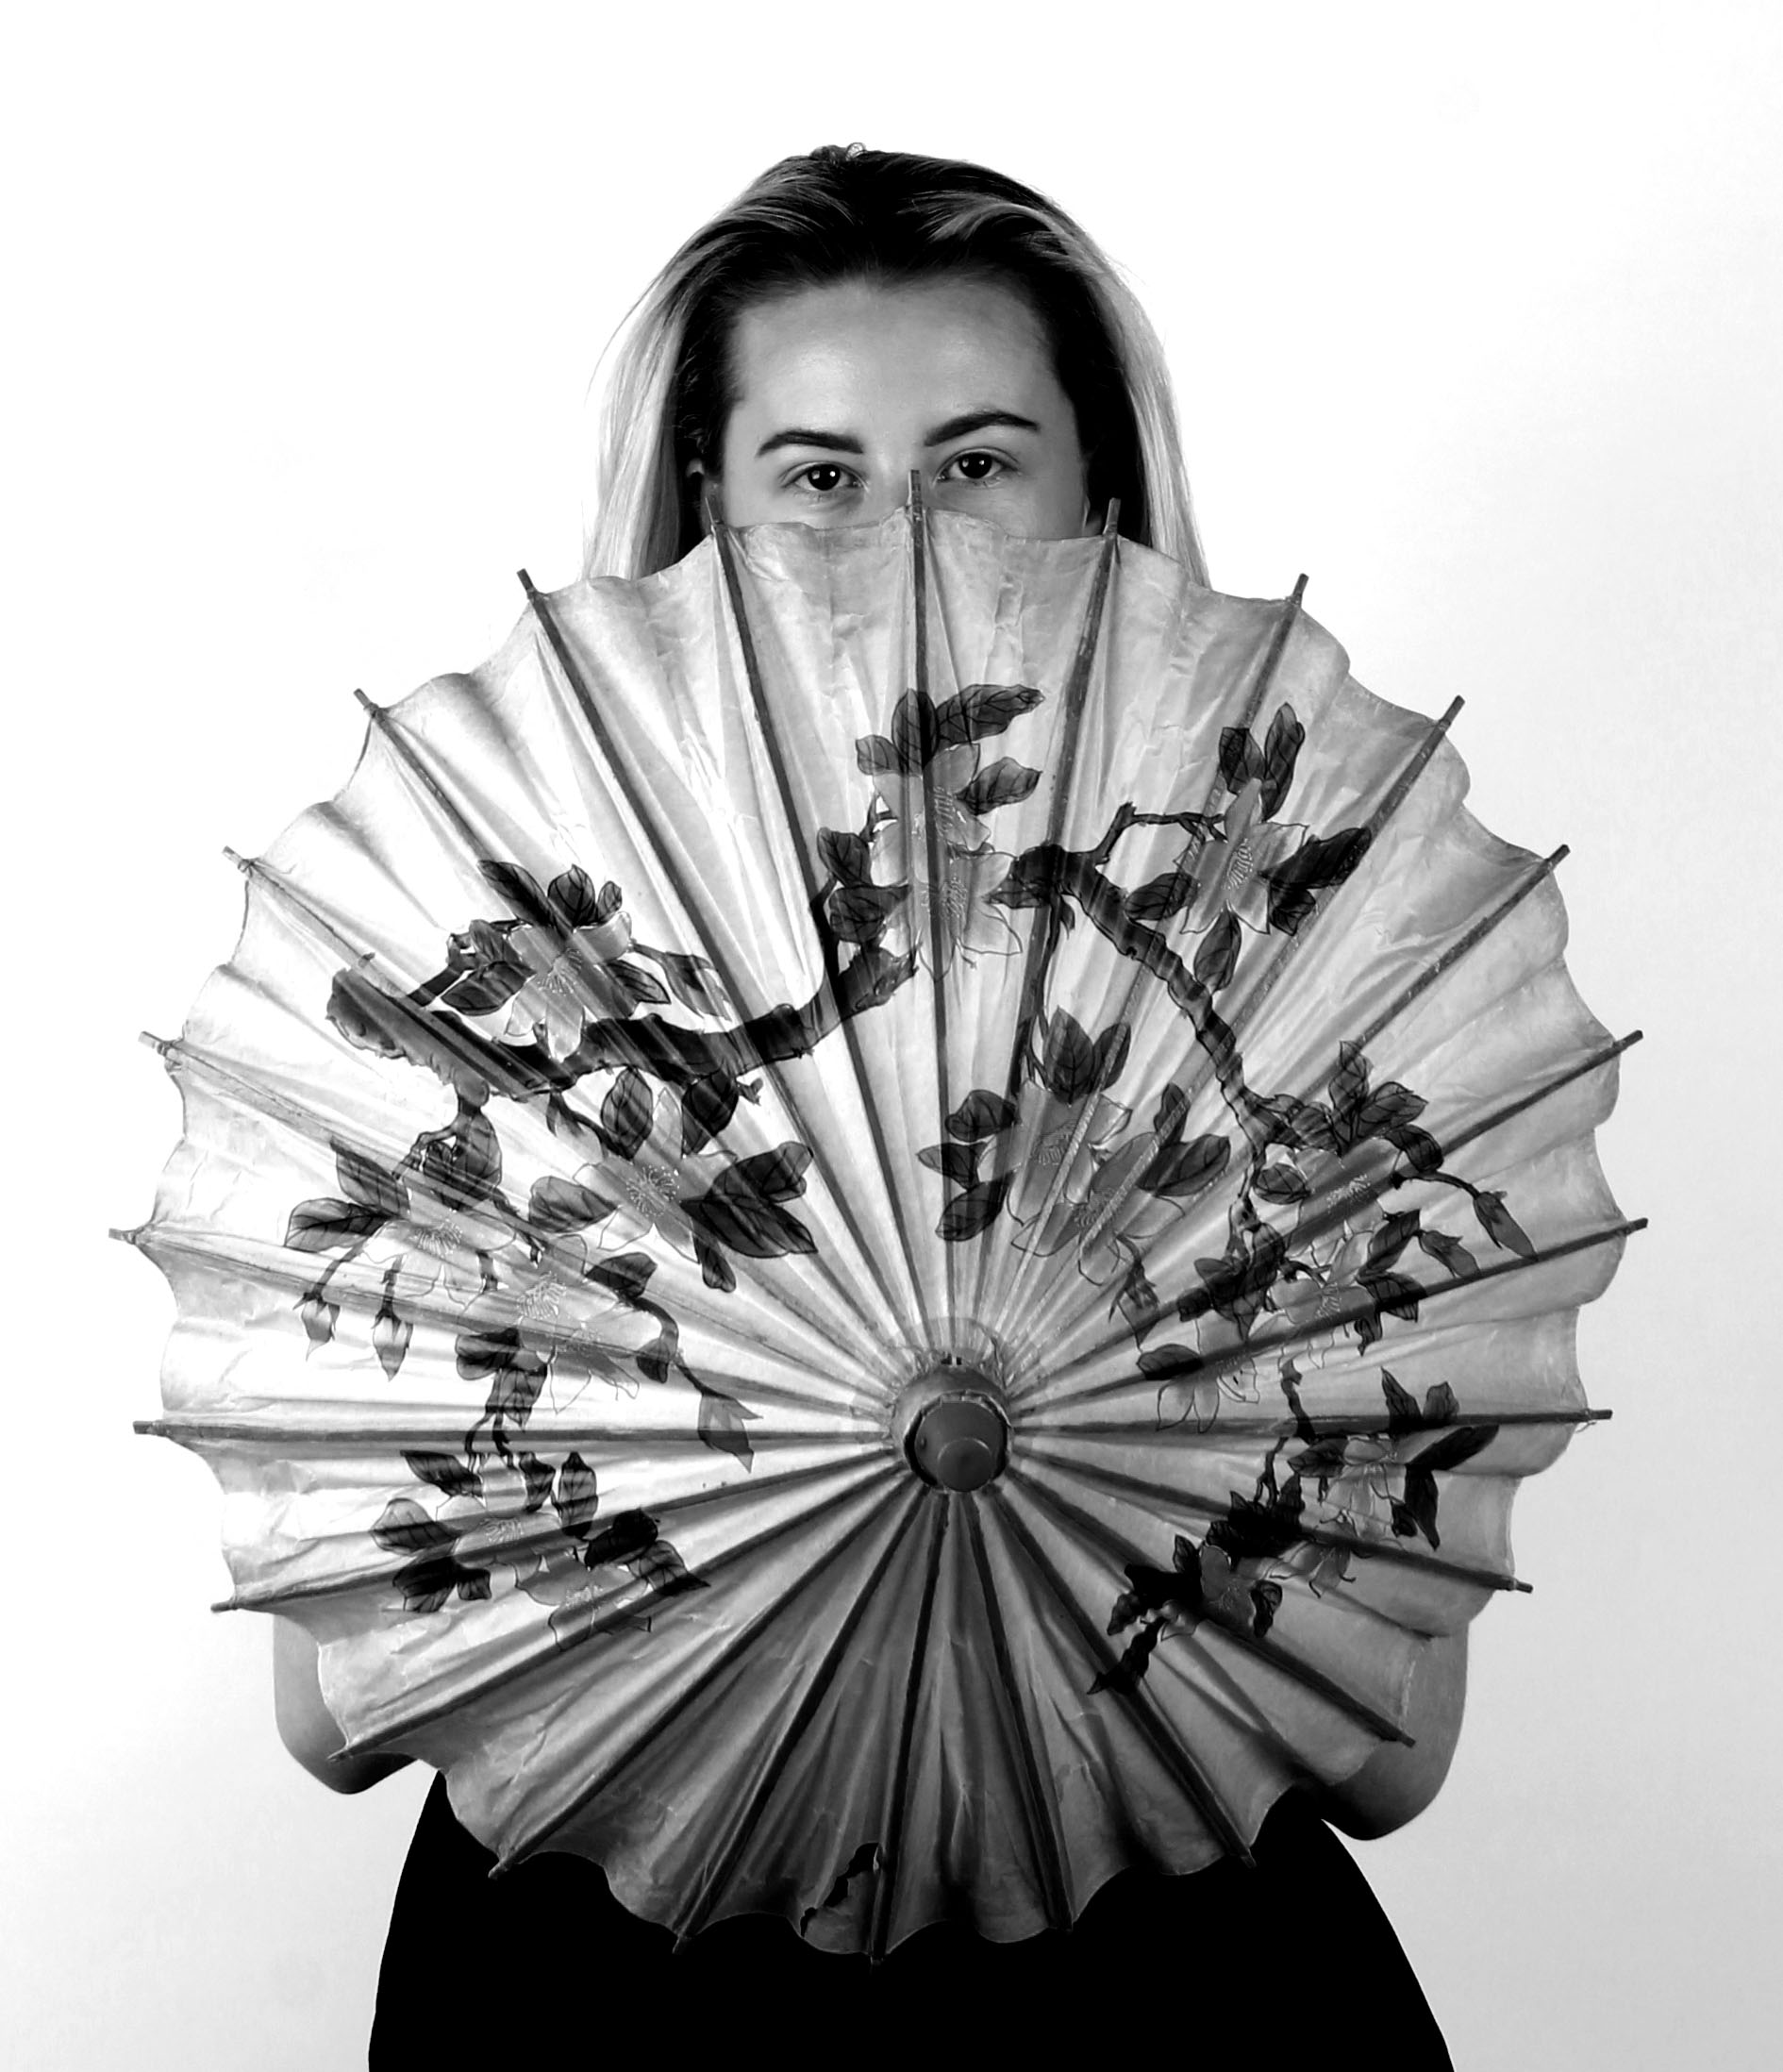 Umbrella - Portraiture Photography